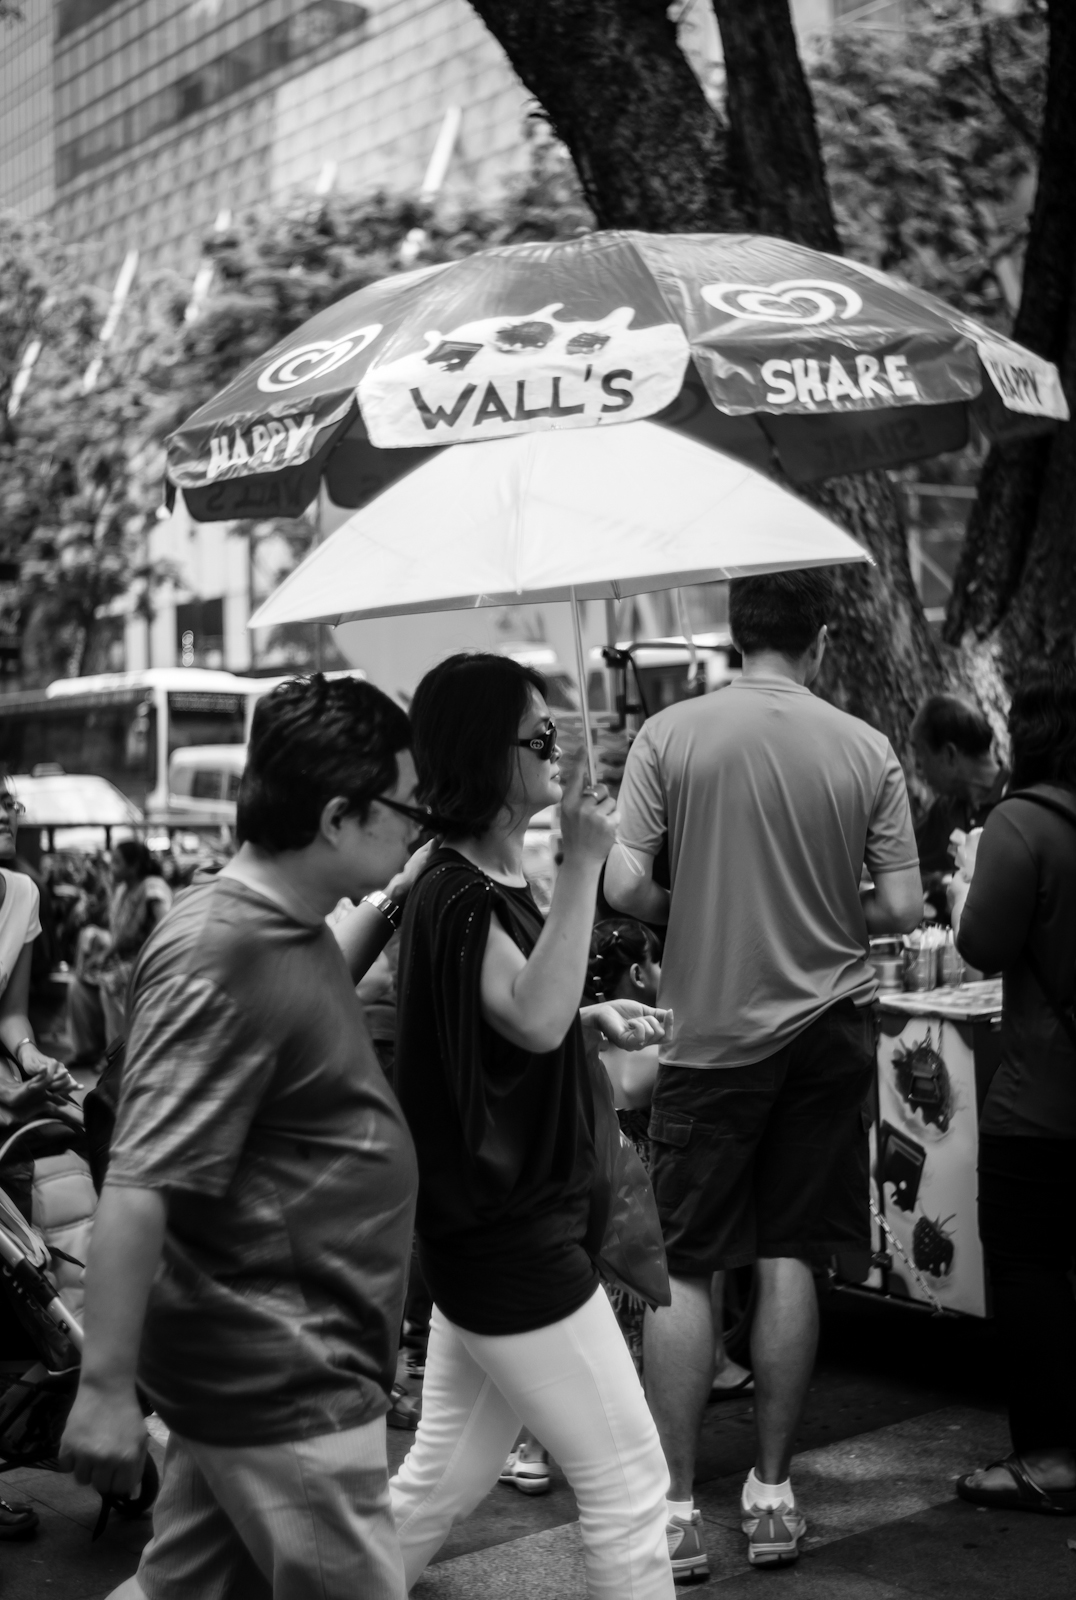 Two woman walking in Orchard Road under an umbrella